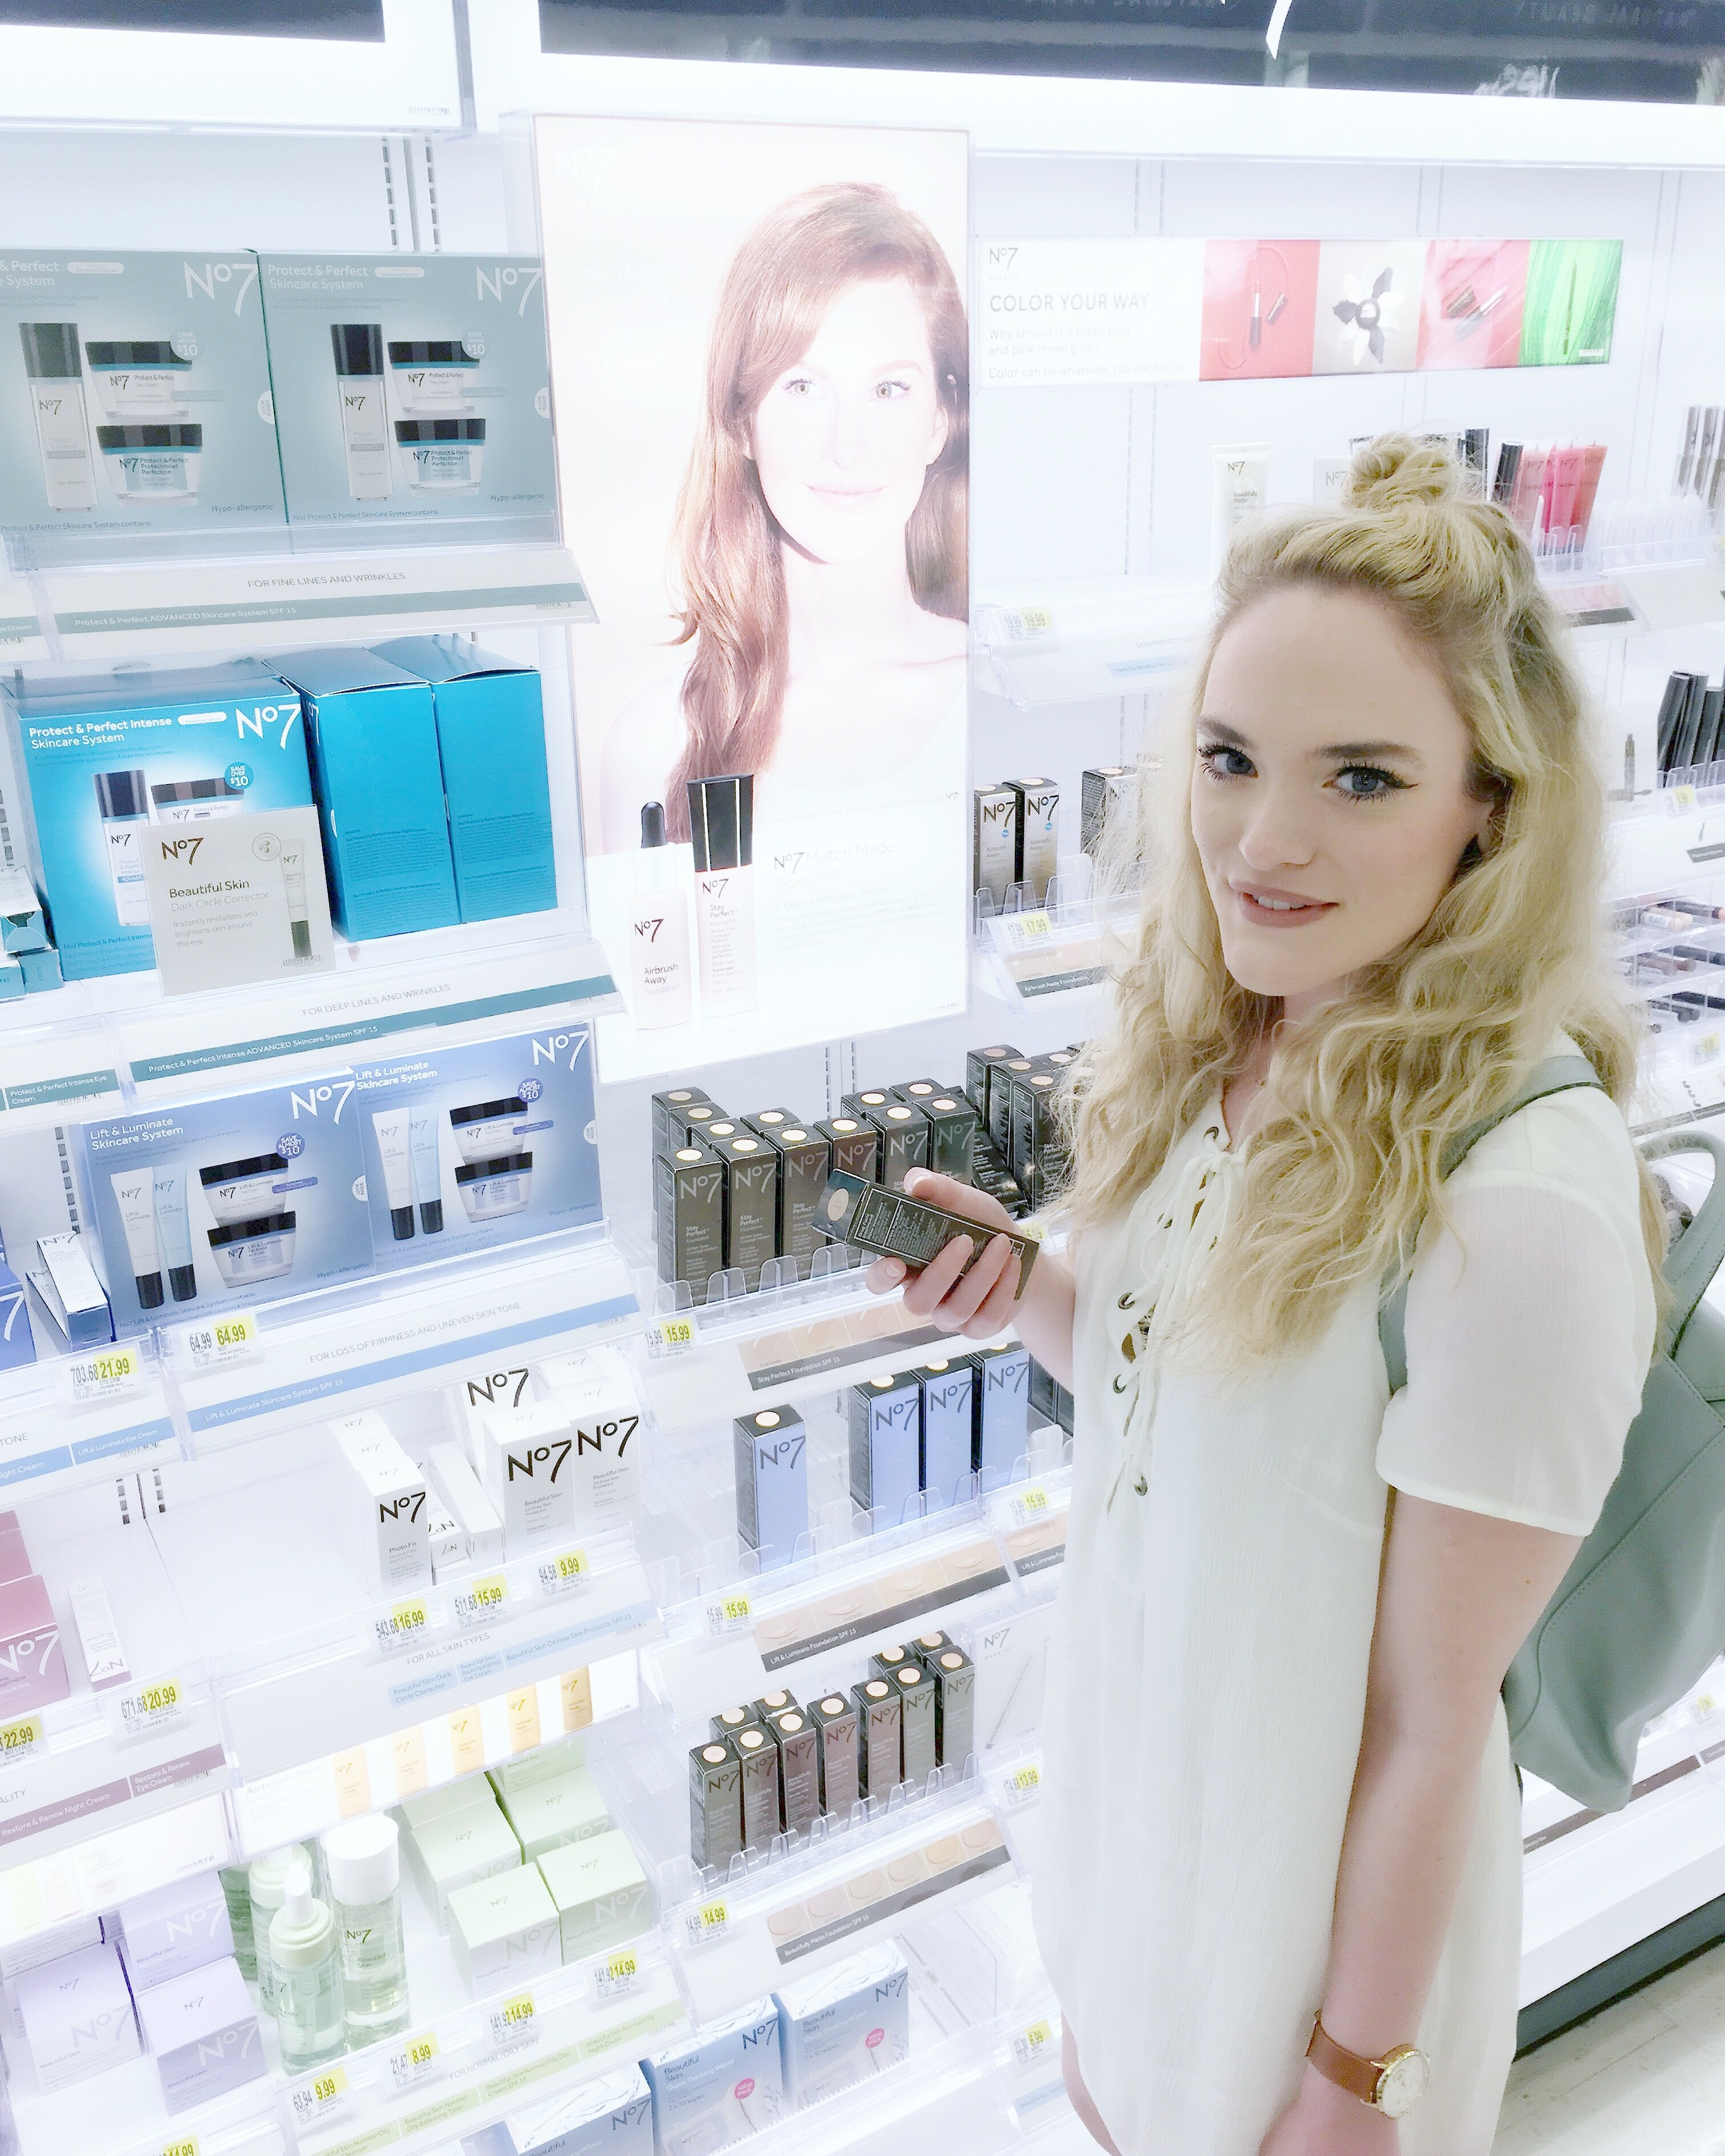 picking up some new makeup - can't wait to show you all some tutorials :)